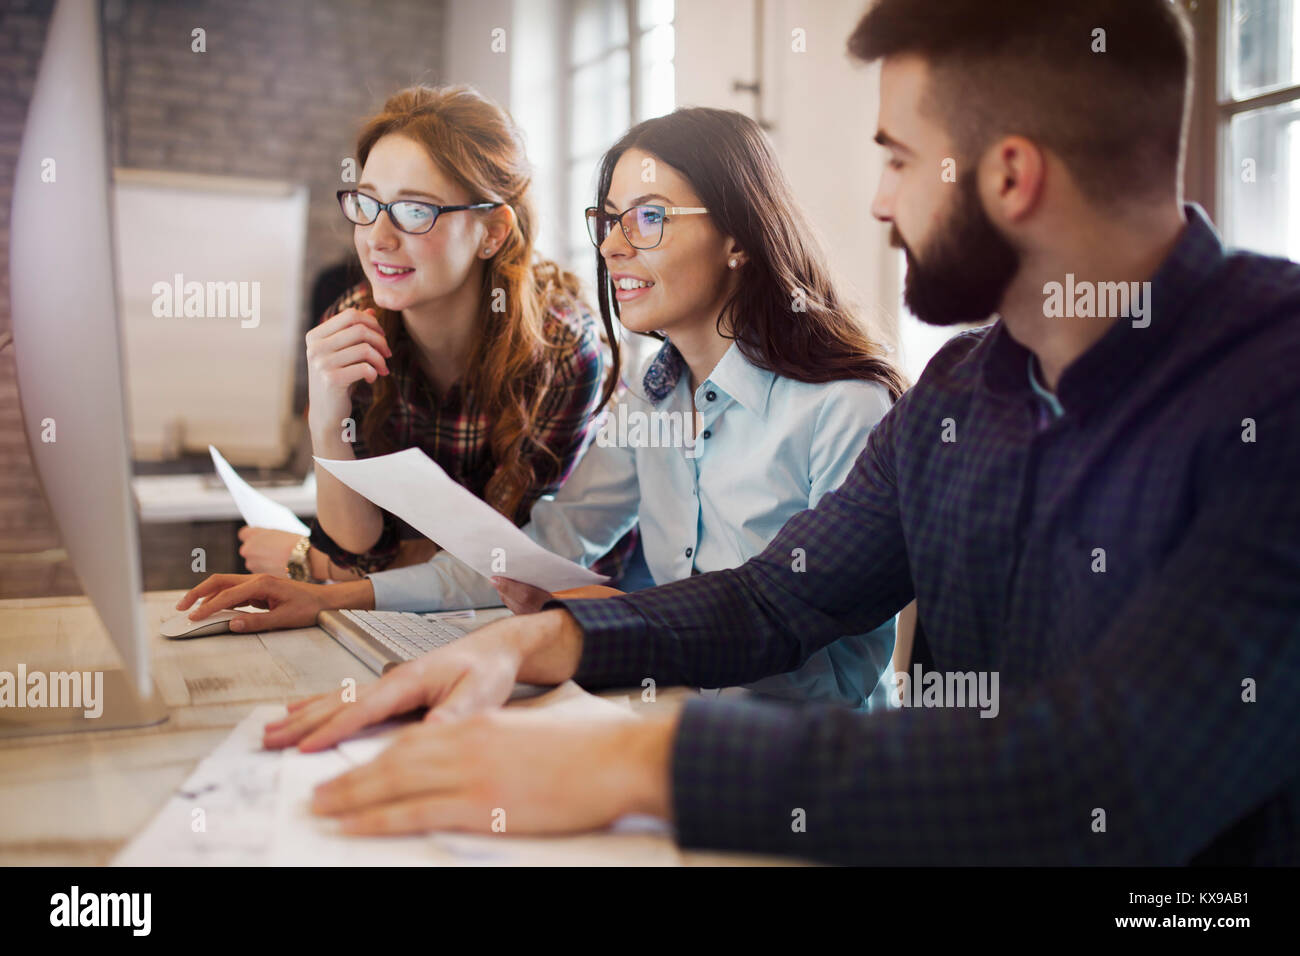 Group of young designers working as team - Stock Image